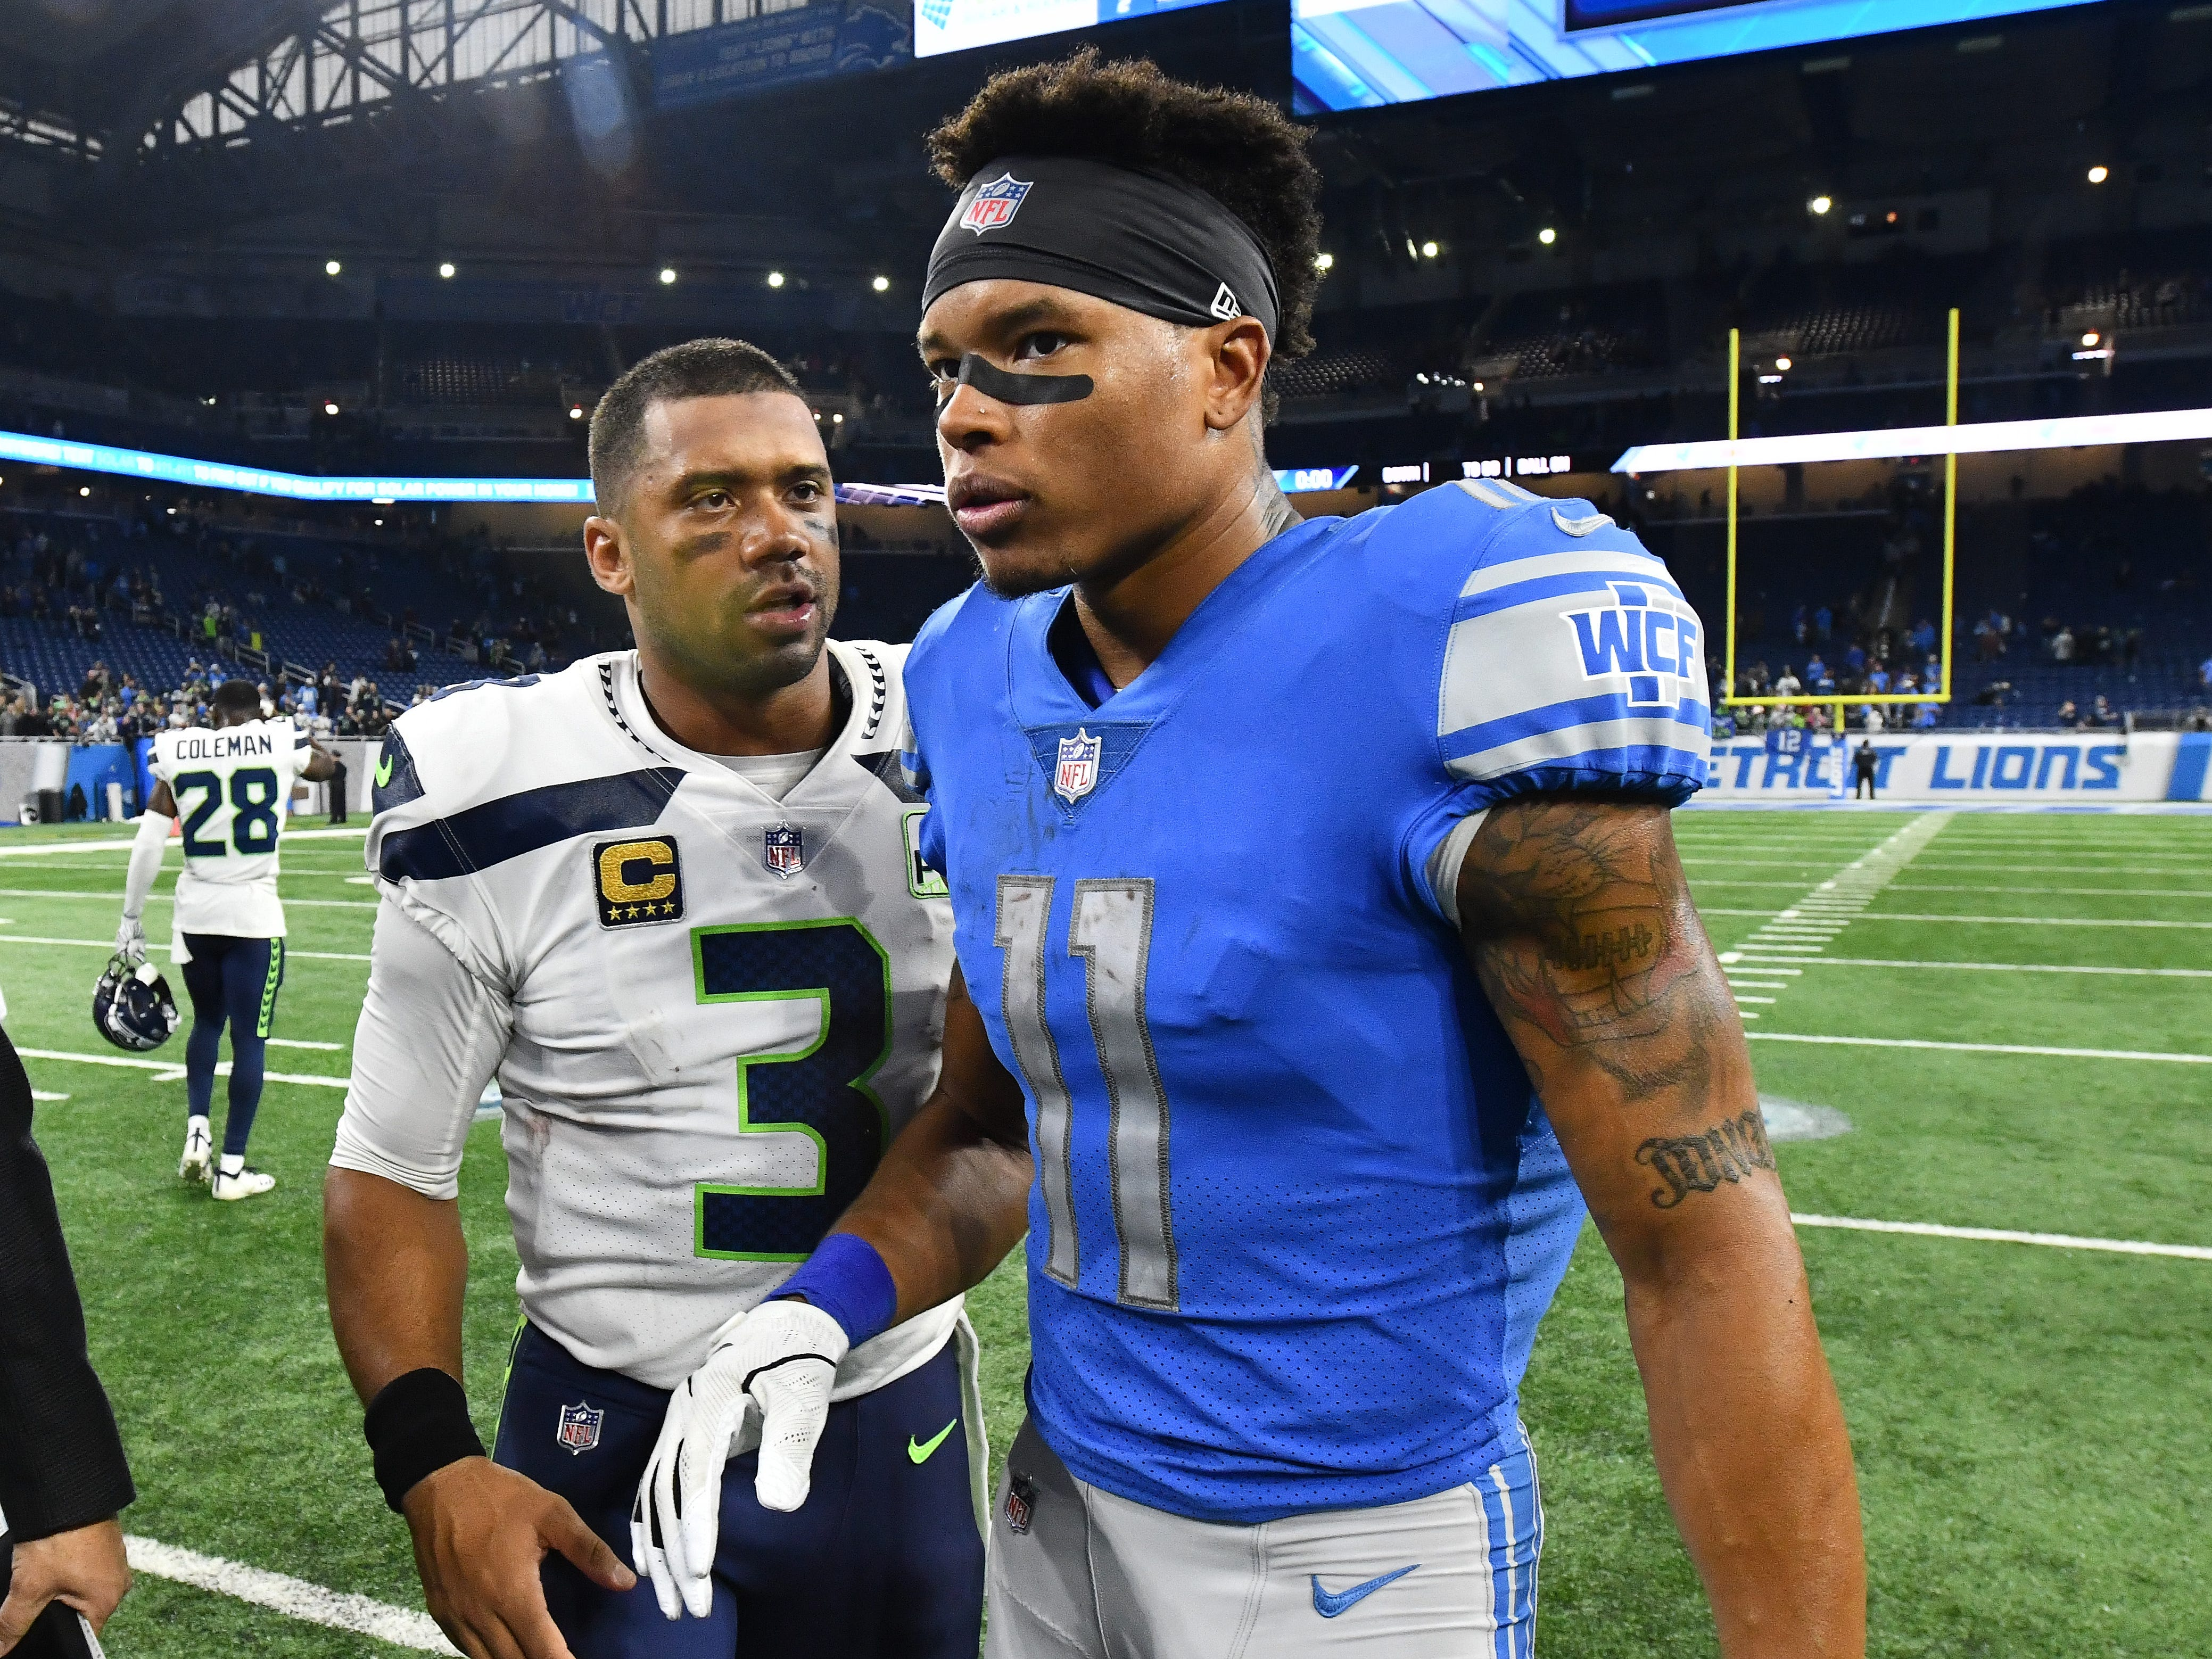 Seahawks quarterback Russell Wilson and Lions' Marvin Jones Jr. chat on the field after the 28-14 Seattle victory over Detroit.